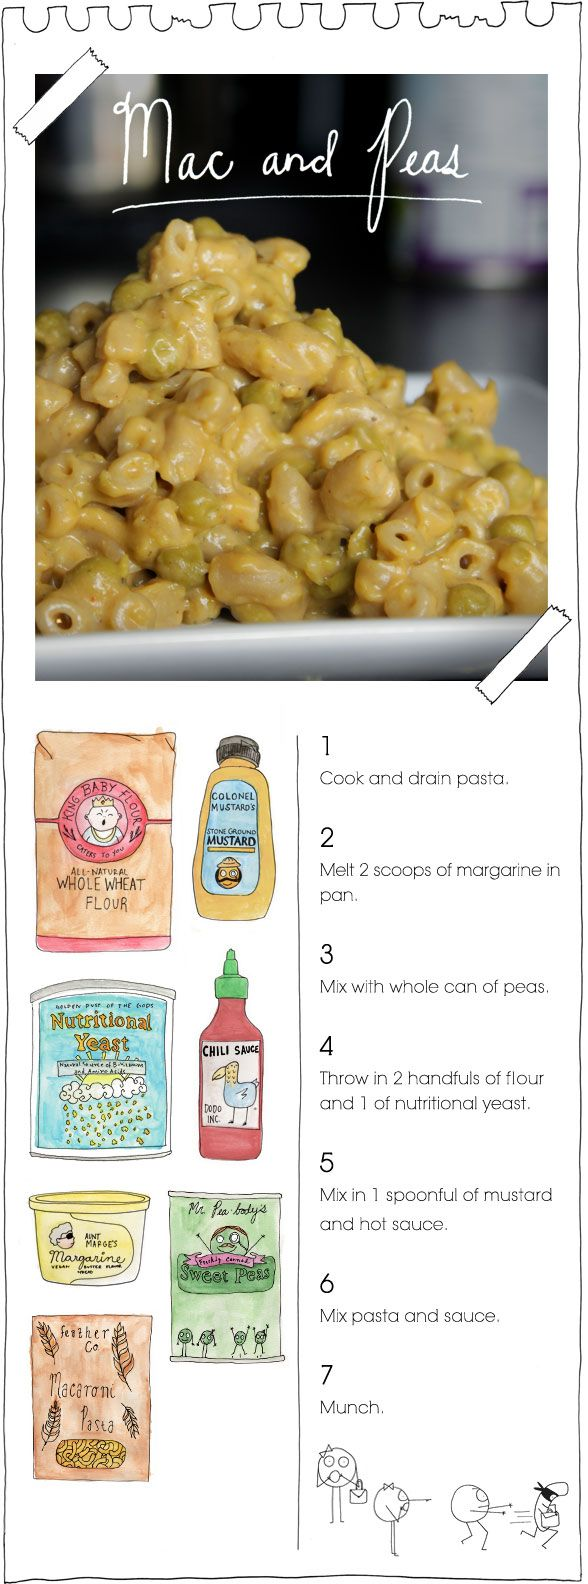 mac and peas #vegan from vegan stoner. I'd do this with swertcorn. Peas are the devil.